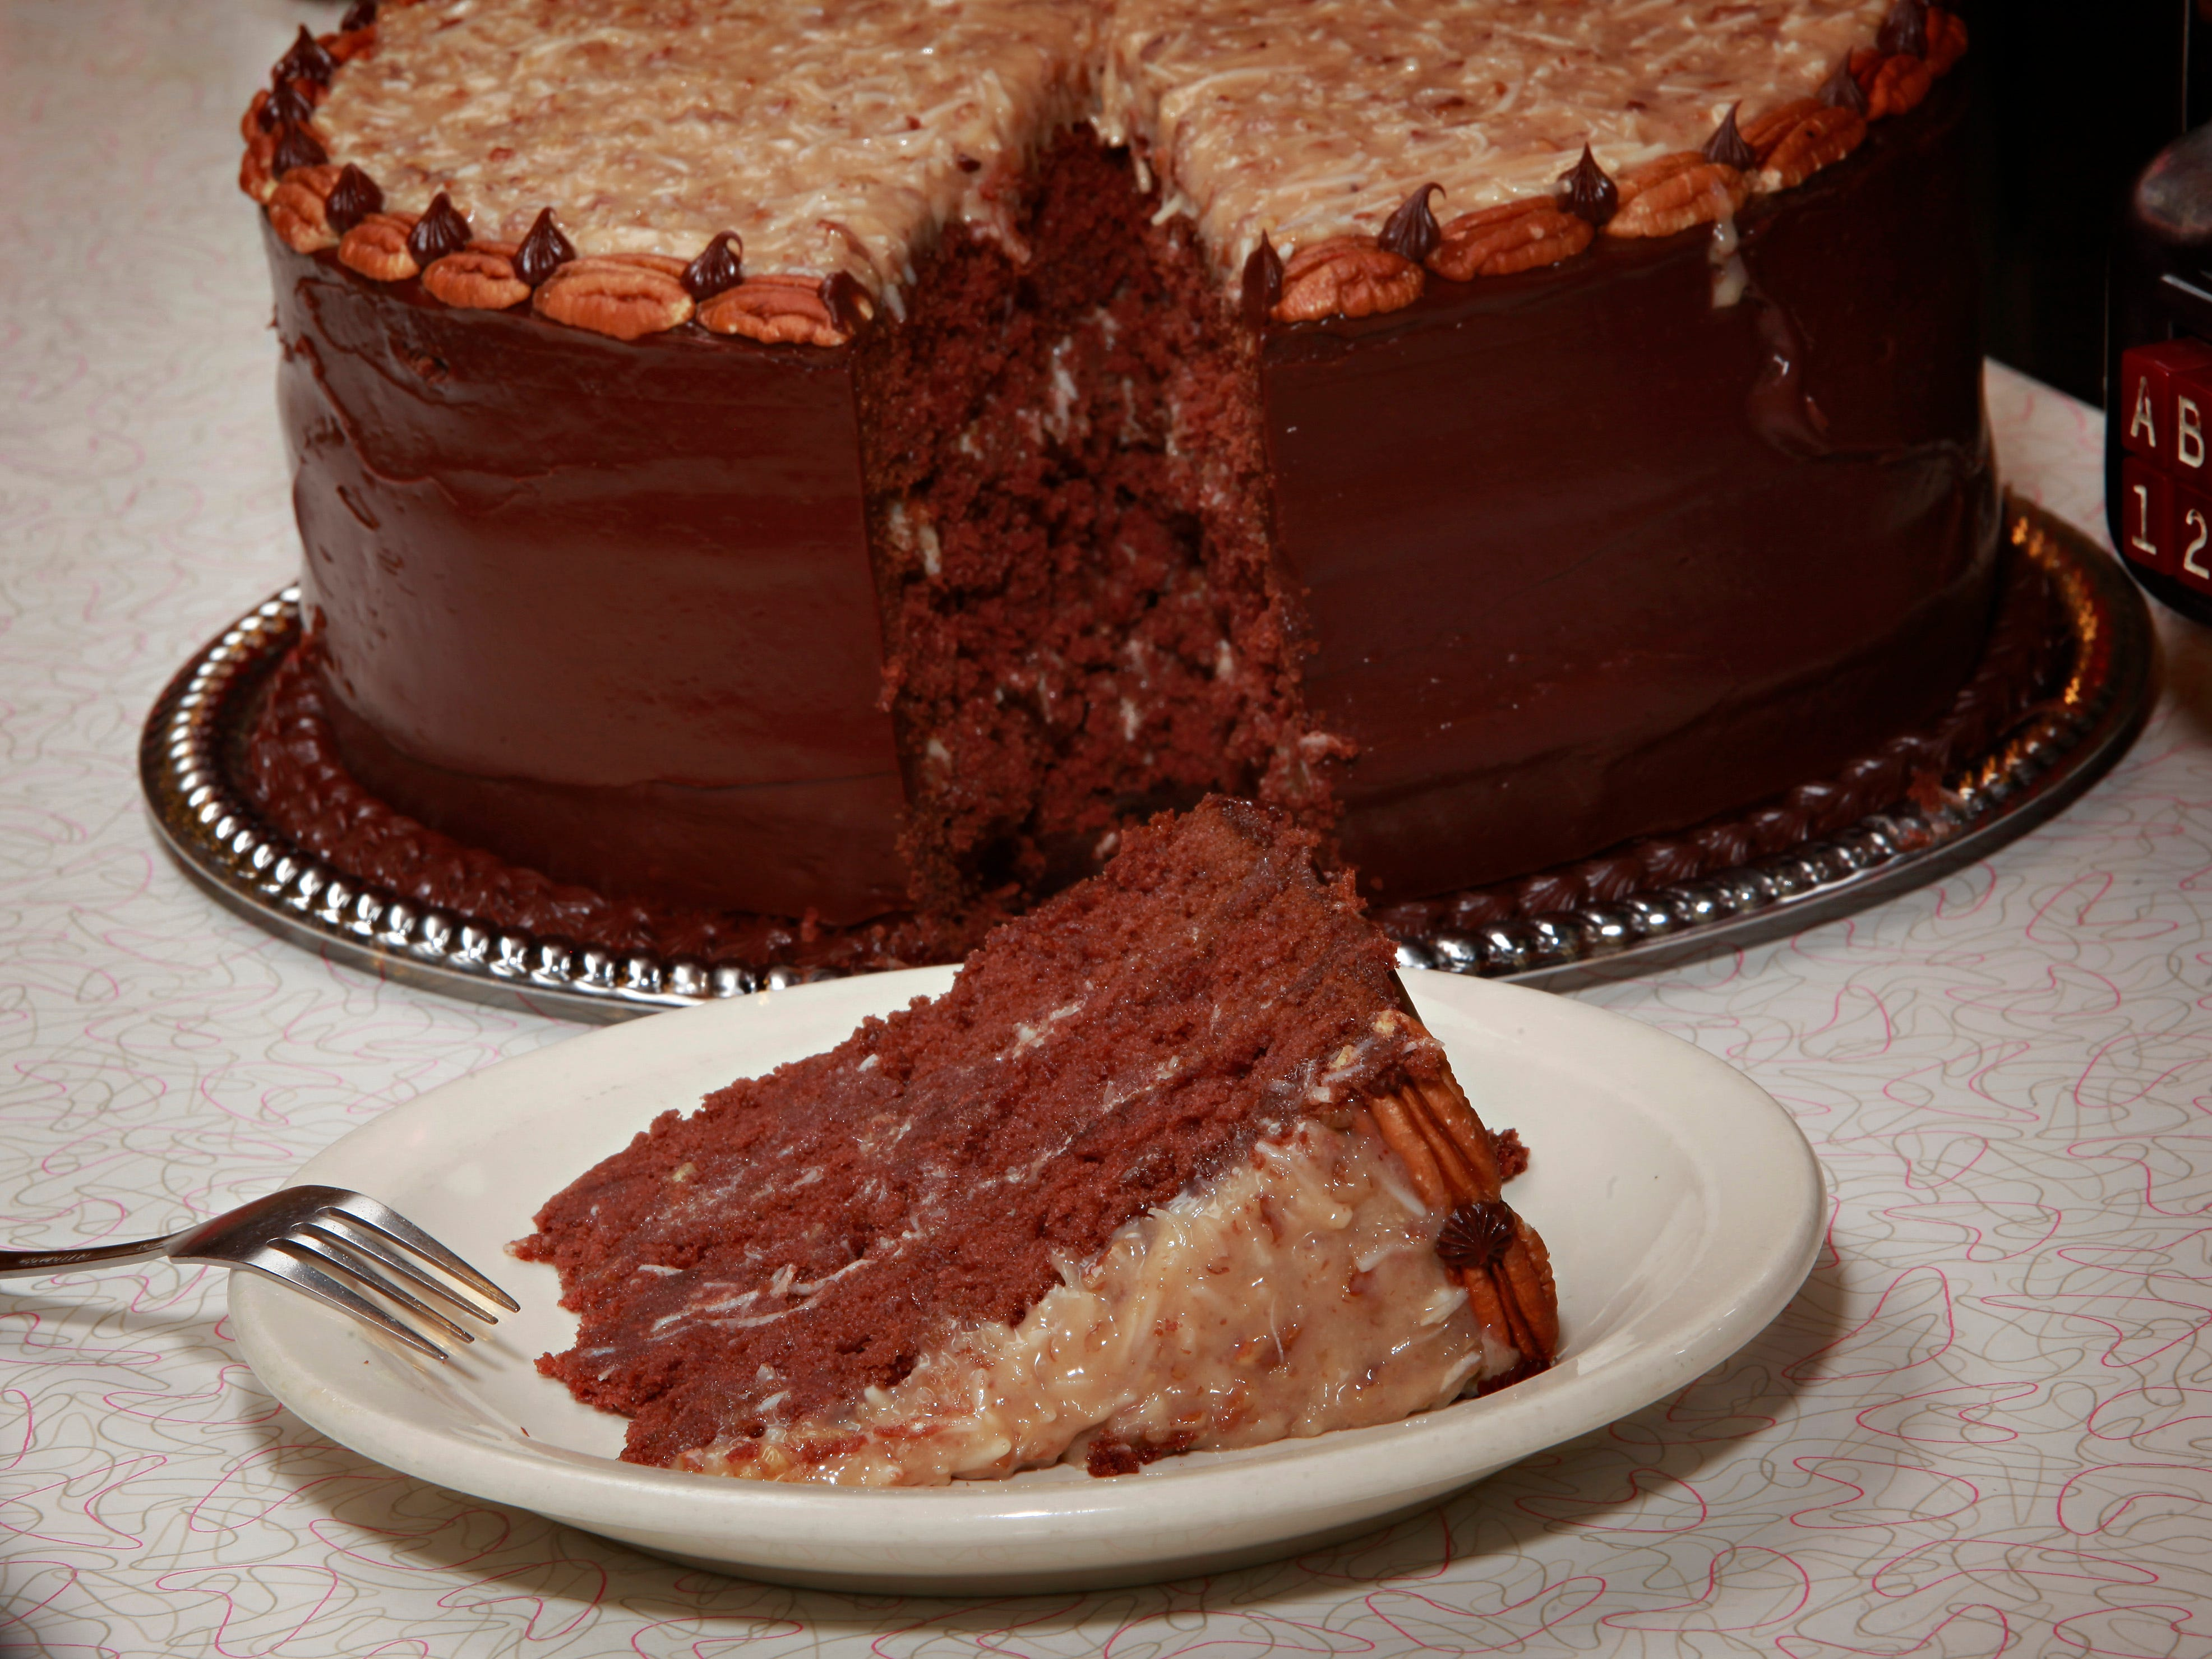 The German chocolate cake at Chase's Diner.